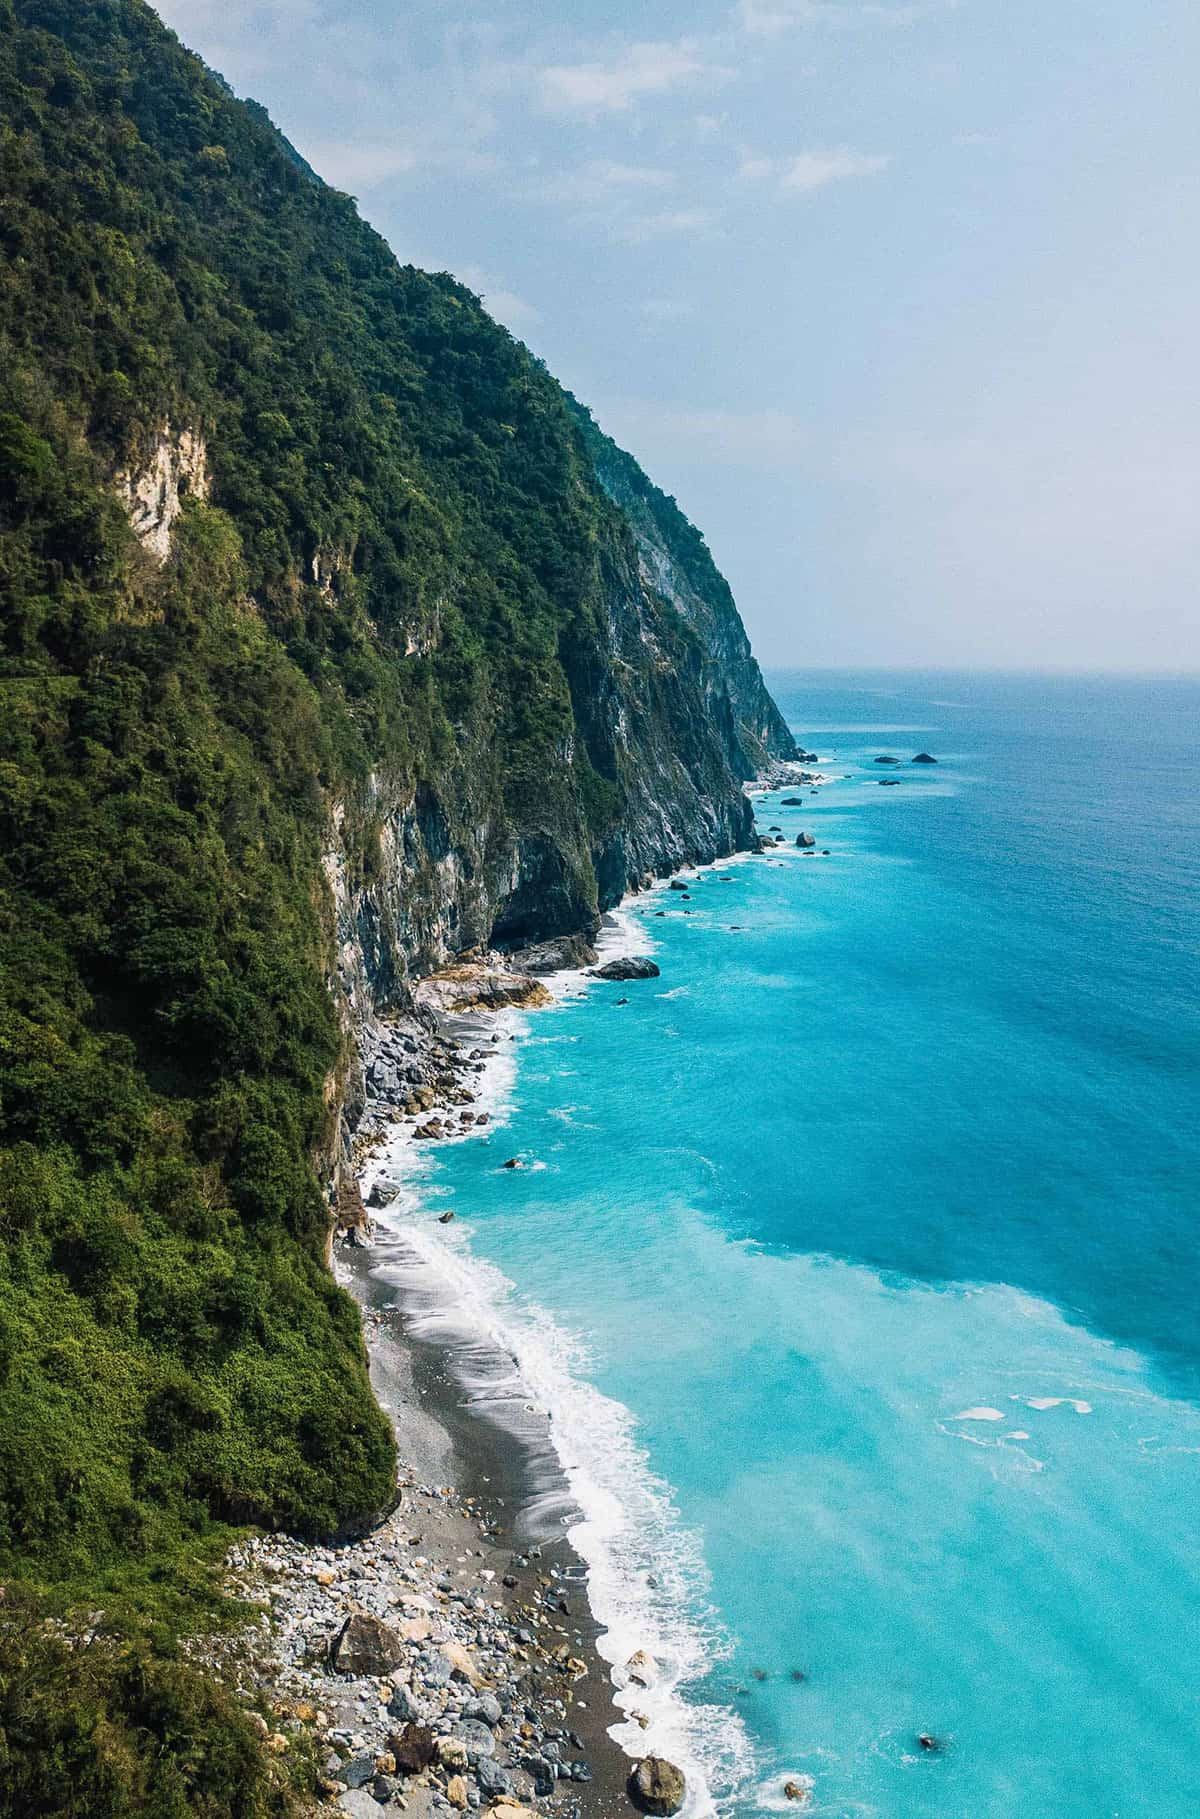 Take a Day Tour of Stunning Taroko National Park in Hualien, Taiwan